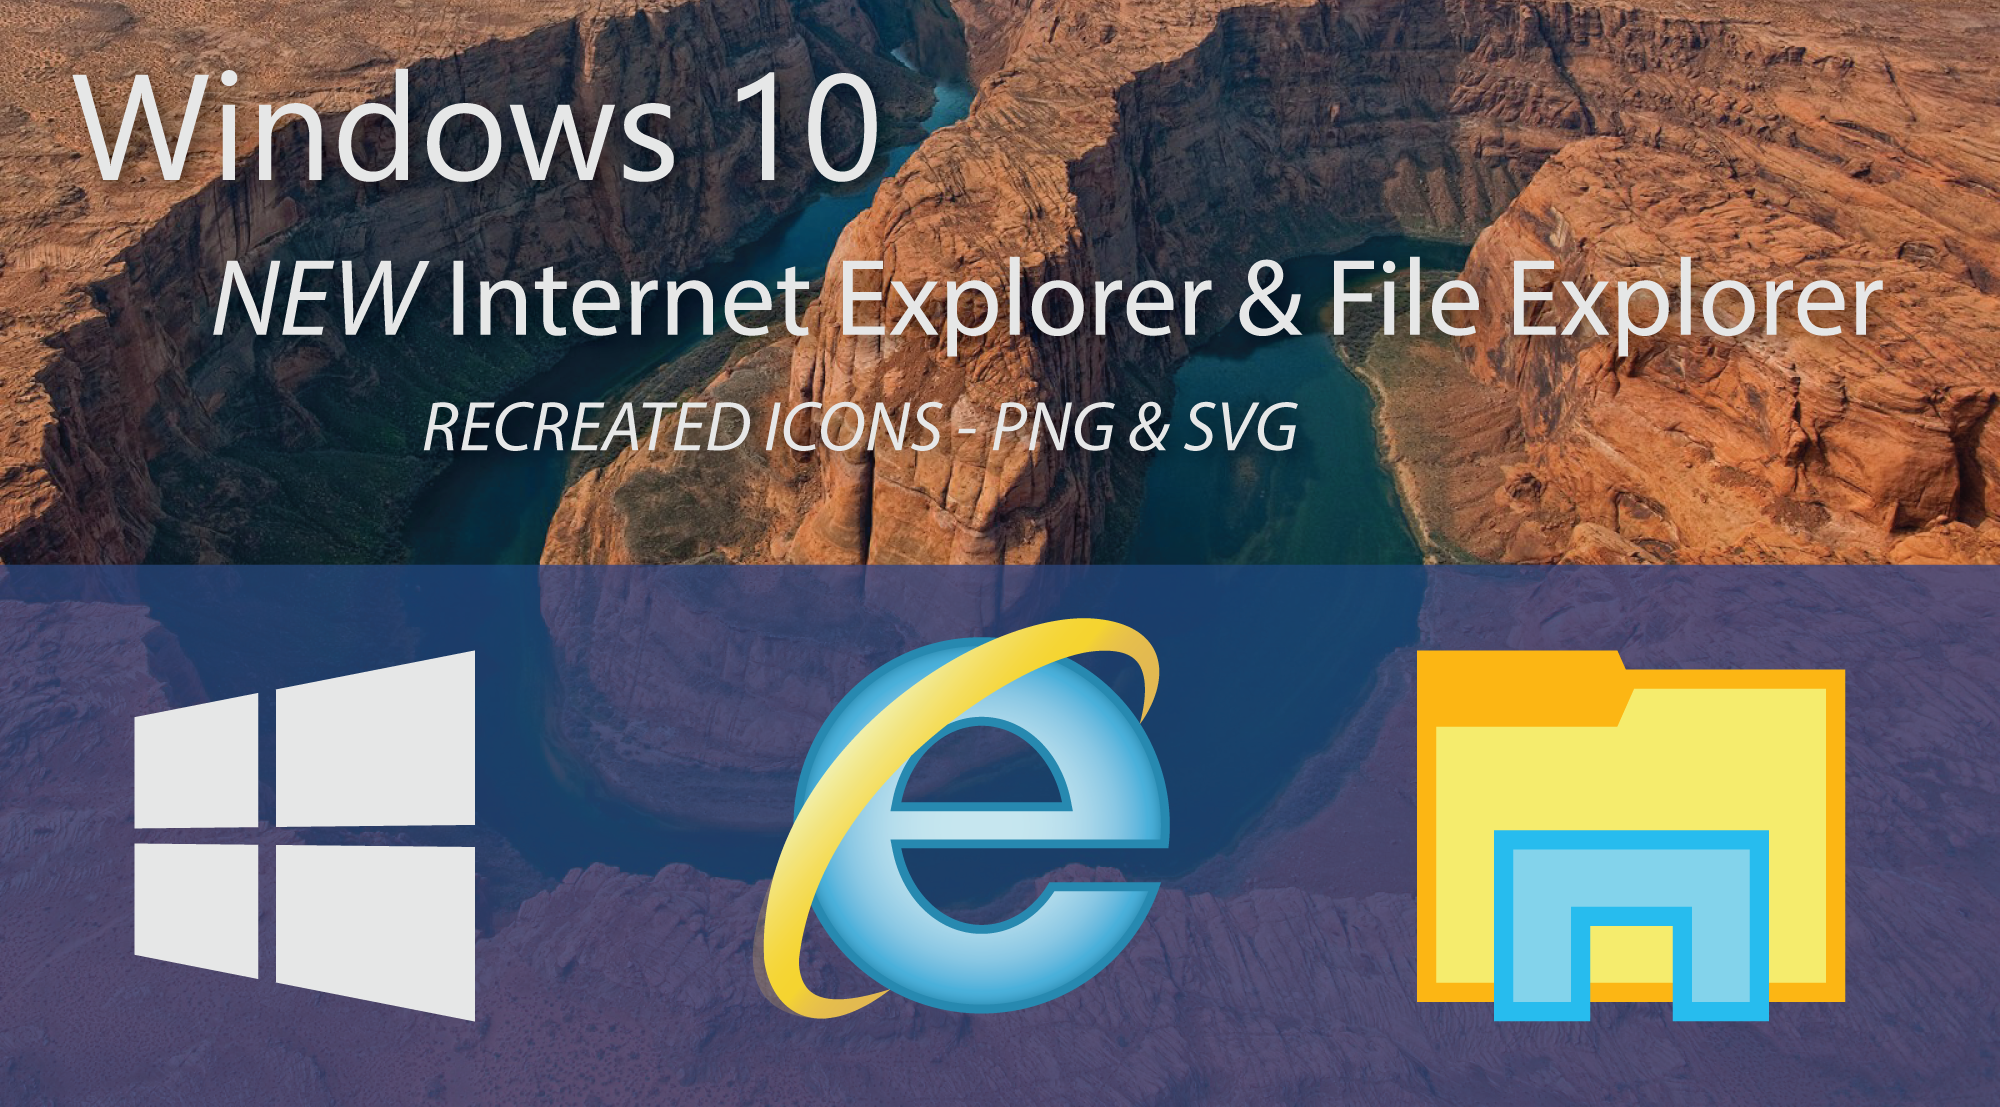 Windows 10 Recreation - File and Internet Explorer